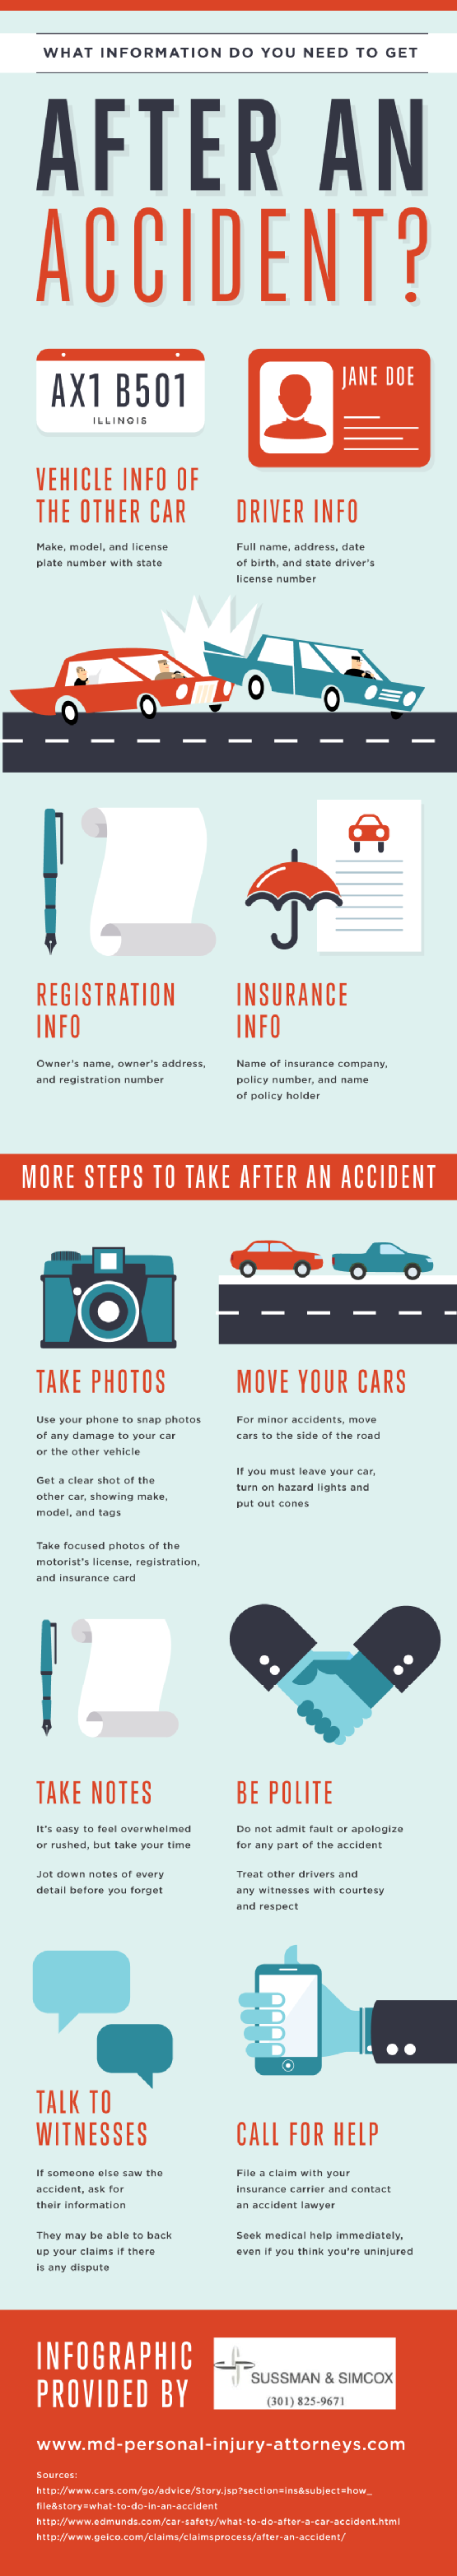 Infographic: What Information Do You Need To Get After An Accident